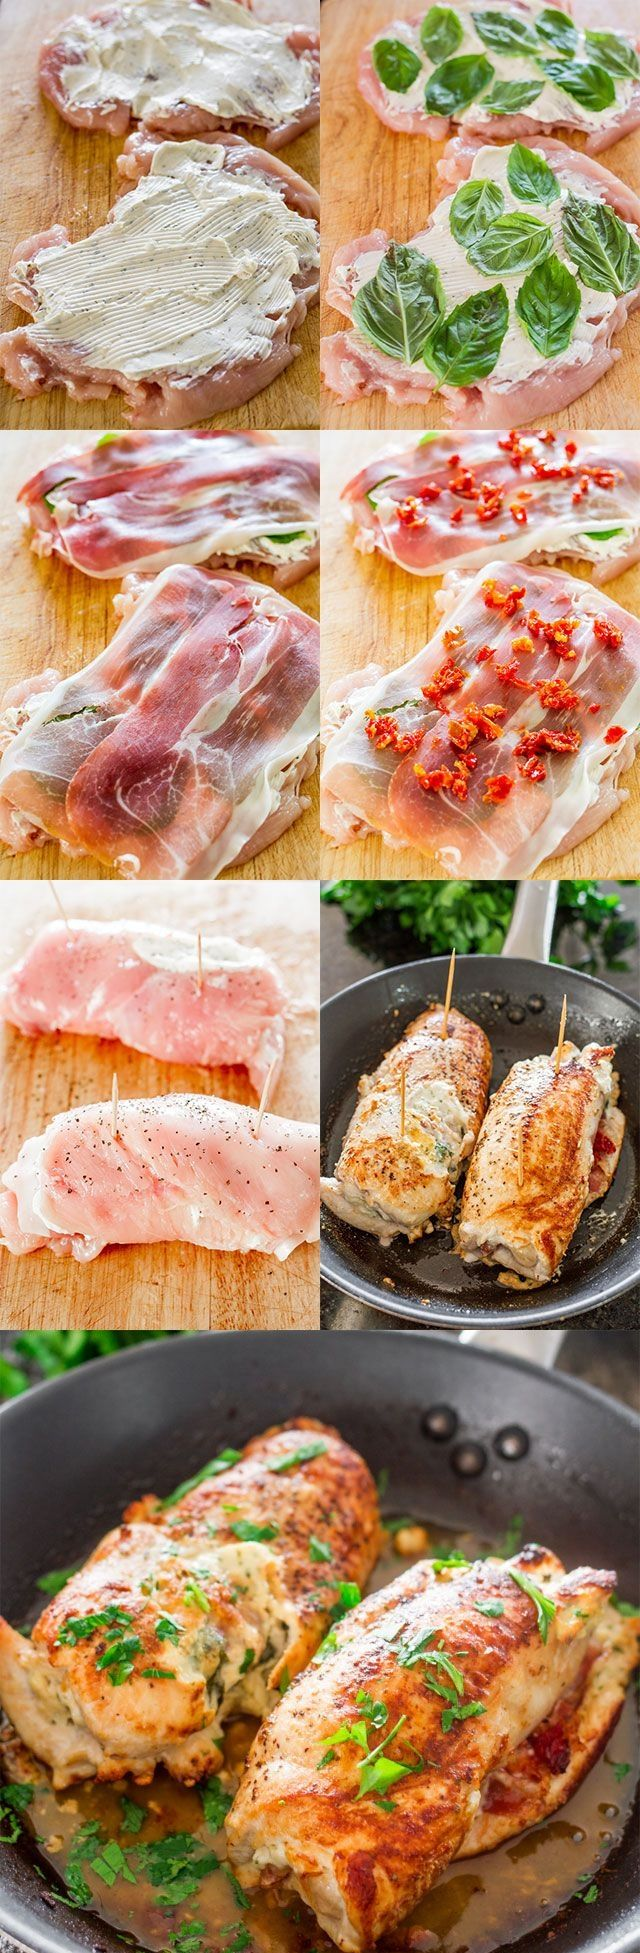 Cheese and Prosciutto Stuffed Chicken Breasts – an impressive dish for a Sunday night dinner or a Holiday. Delicious chicken rolls with a surprise filling. //Manbo